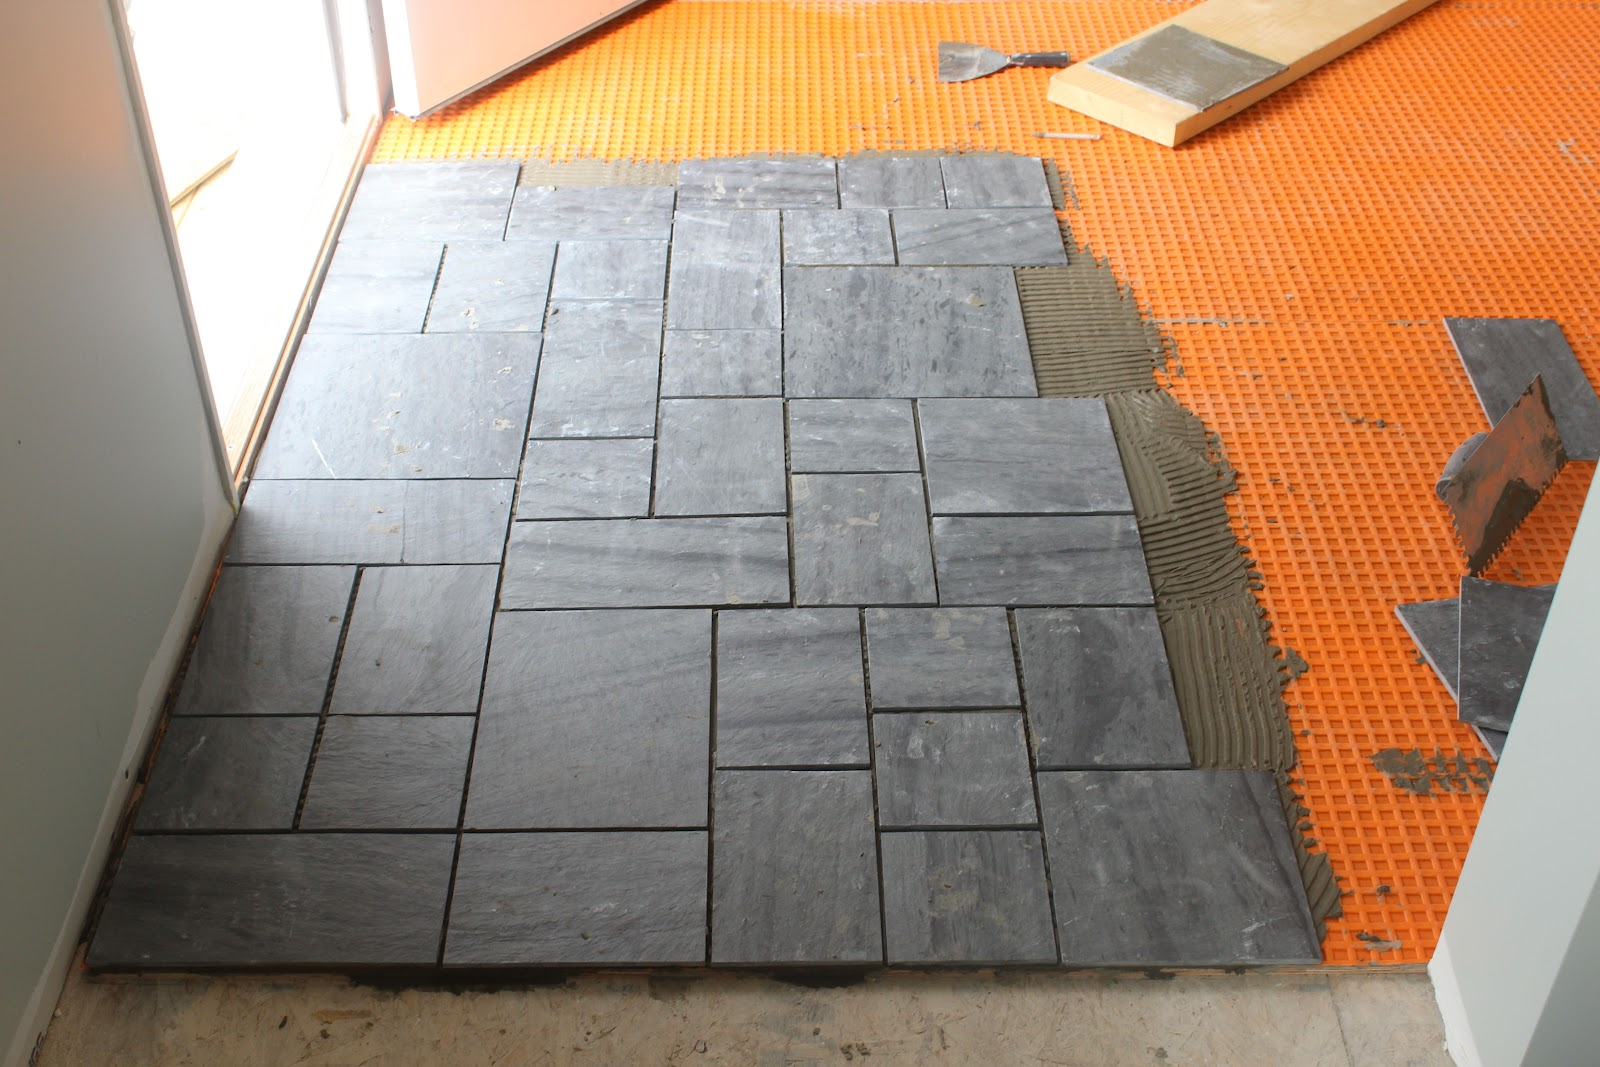 Slate  Natural Beauty With Every Step  Dzine Talk. Living Room Bedroom In One. Modular Living Room Furniture Uk. Living Room Wall Tiles Images. Setting Up Tv In Living Room. Uses Of The Living Room. Small Narrow Living Room Furniture Arrangement. Living Room Furniture Sale. Living Room Tv Making A Comeback